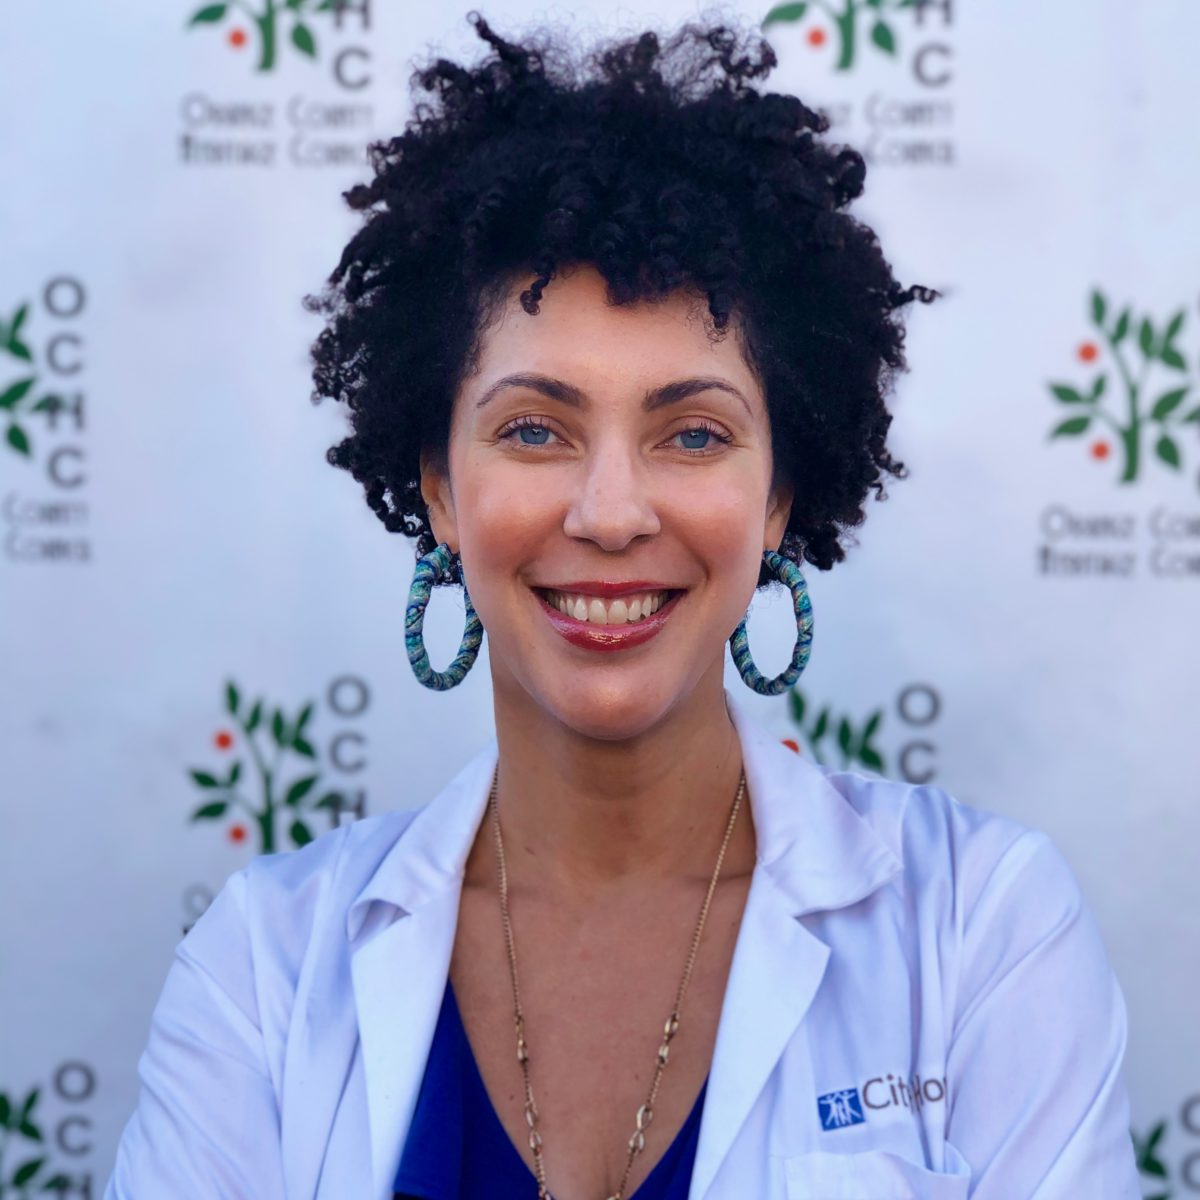 Leanne Burnham, PhD Prostate Cancer | The Patient Story